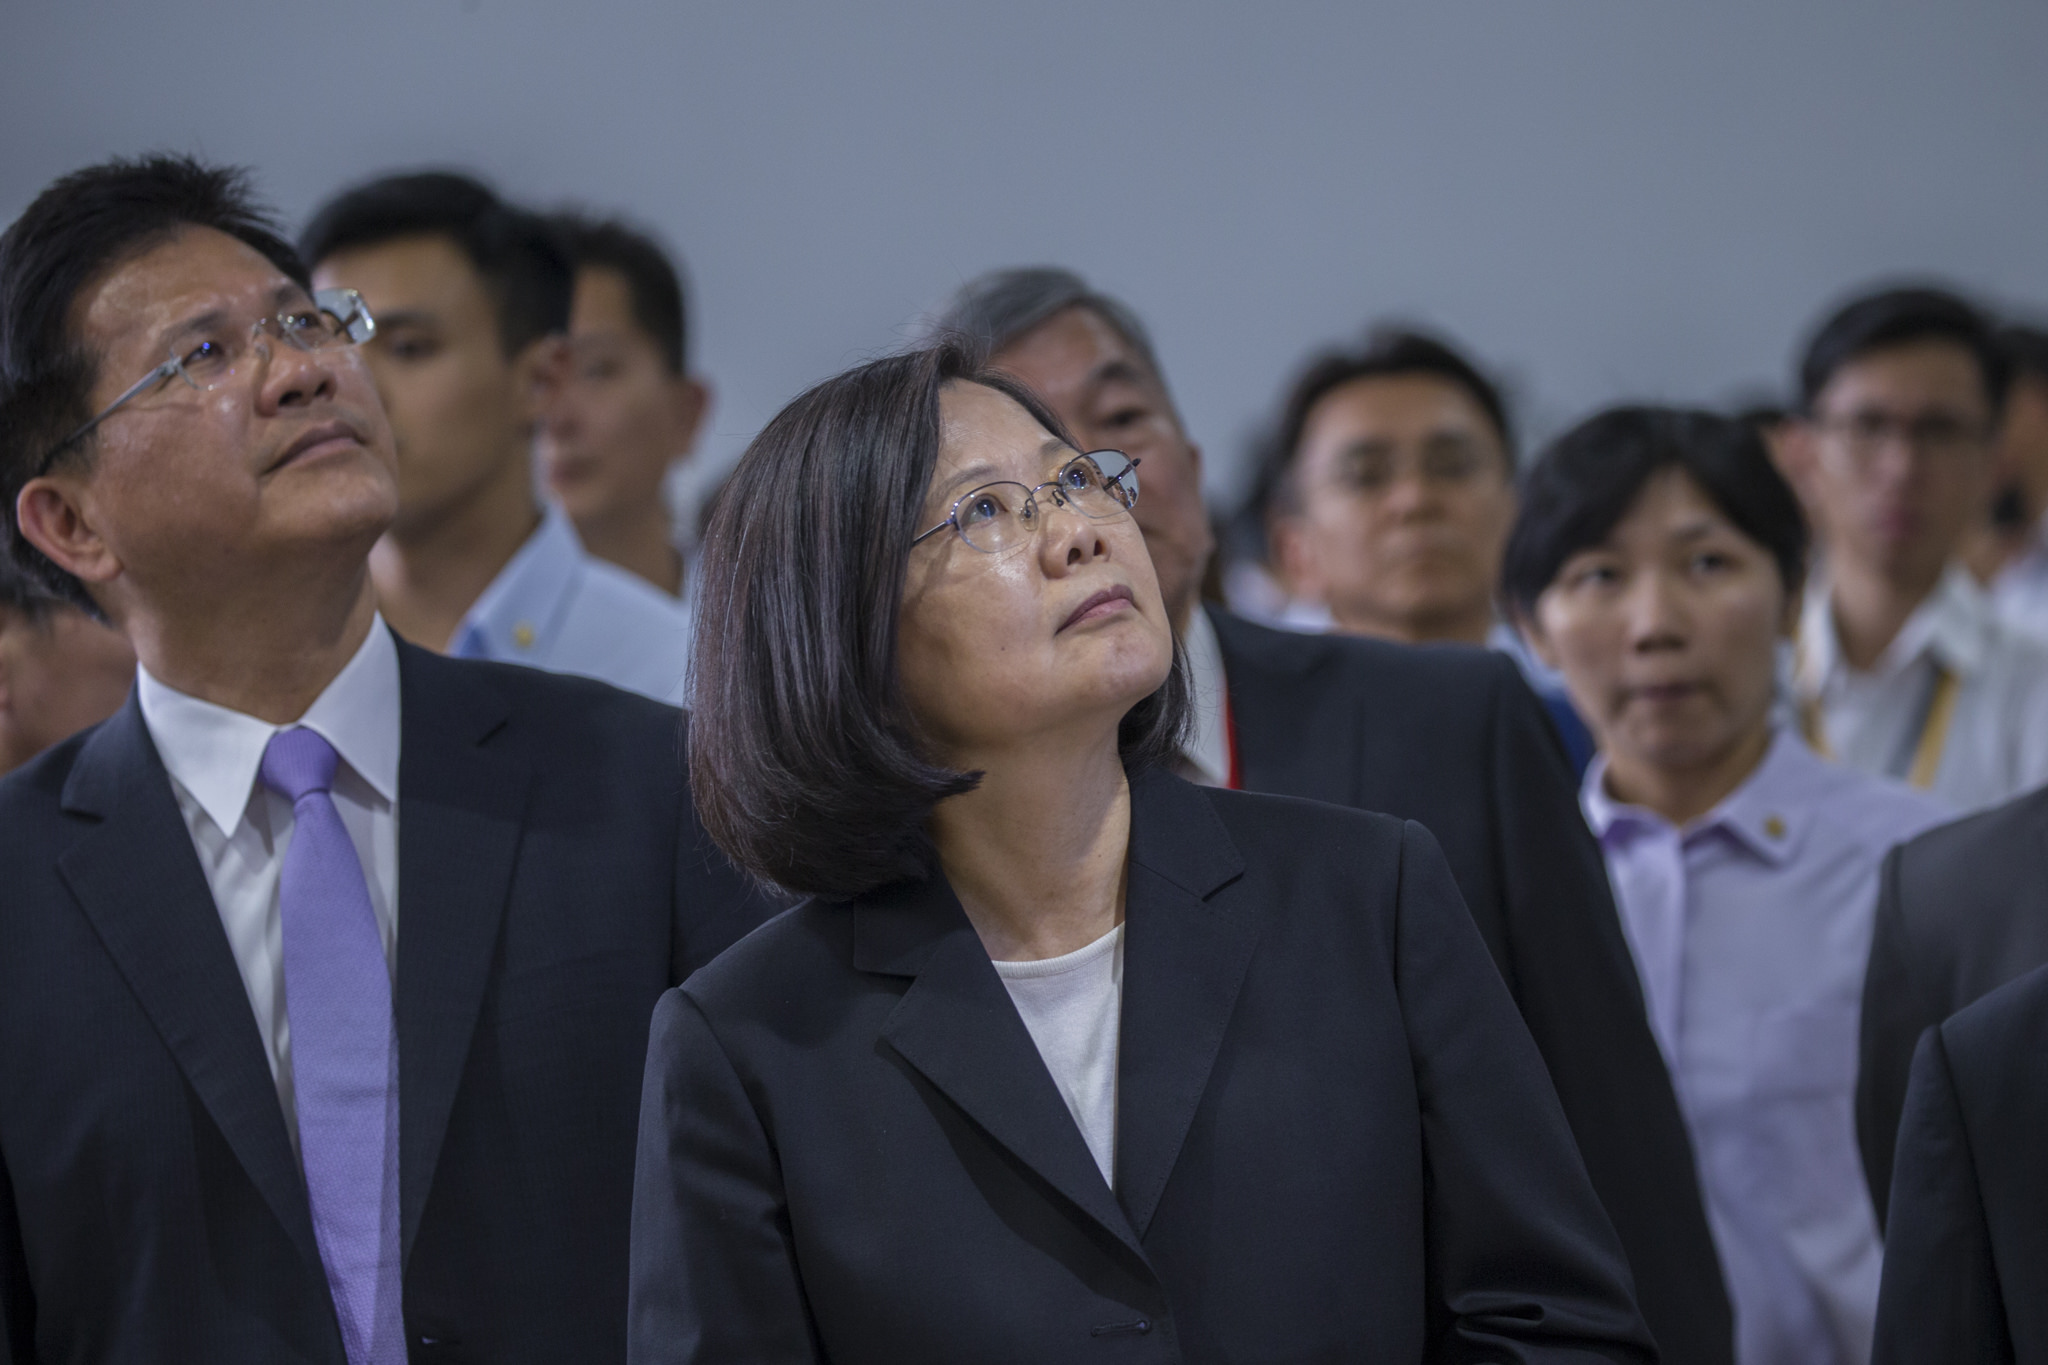 Master Yoda is Not Here: Tsai Ing-wen's Second Year - Ketagalan Media